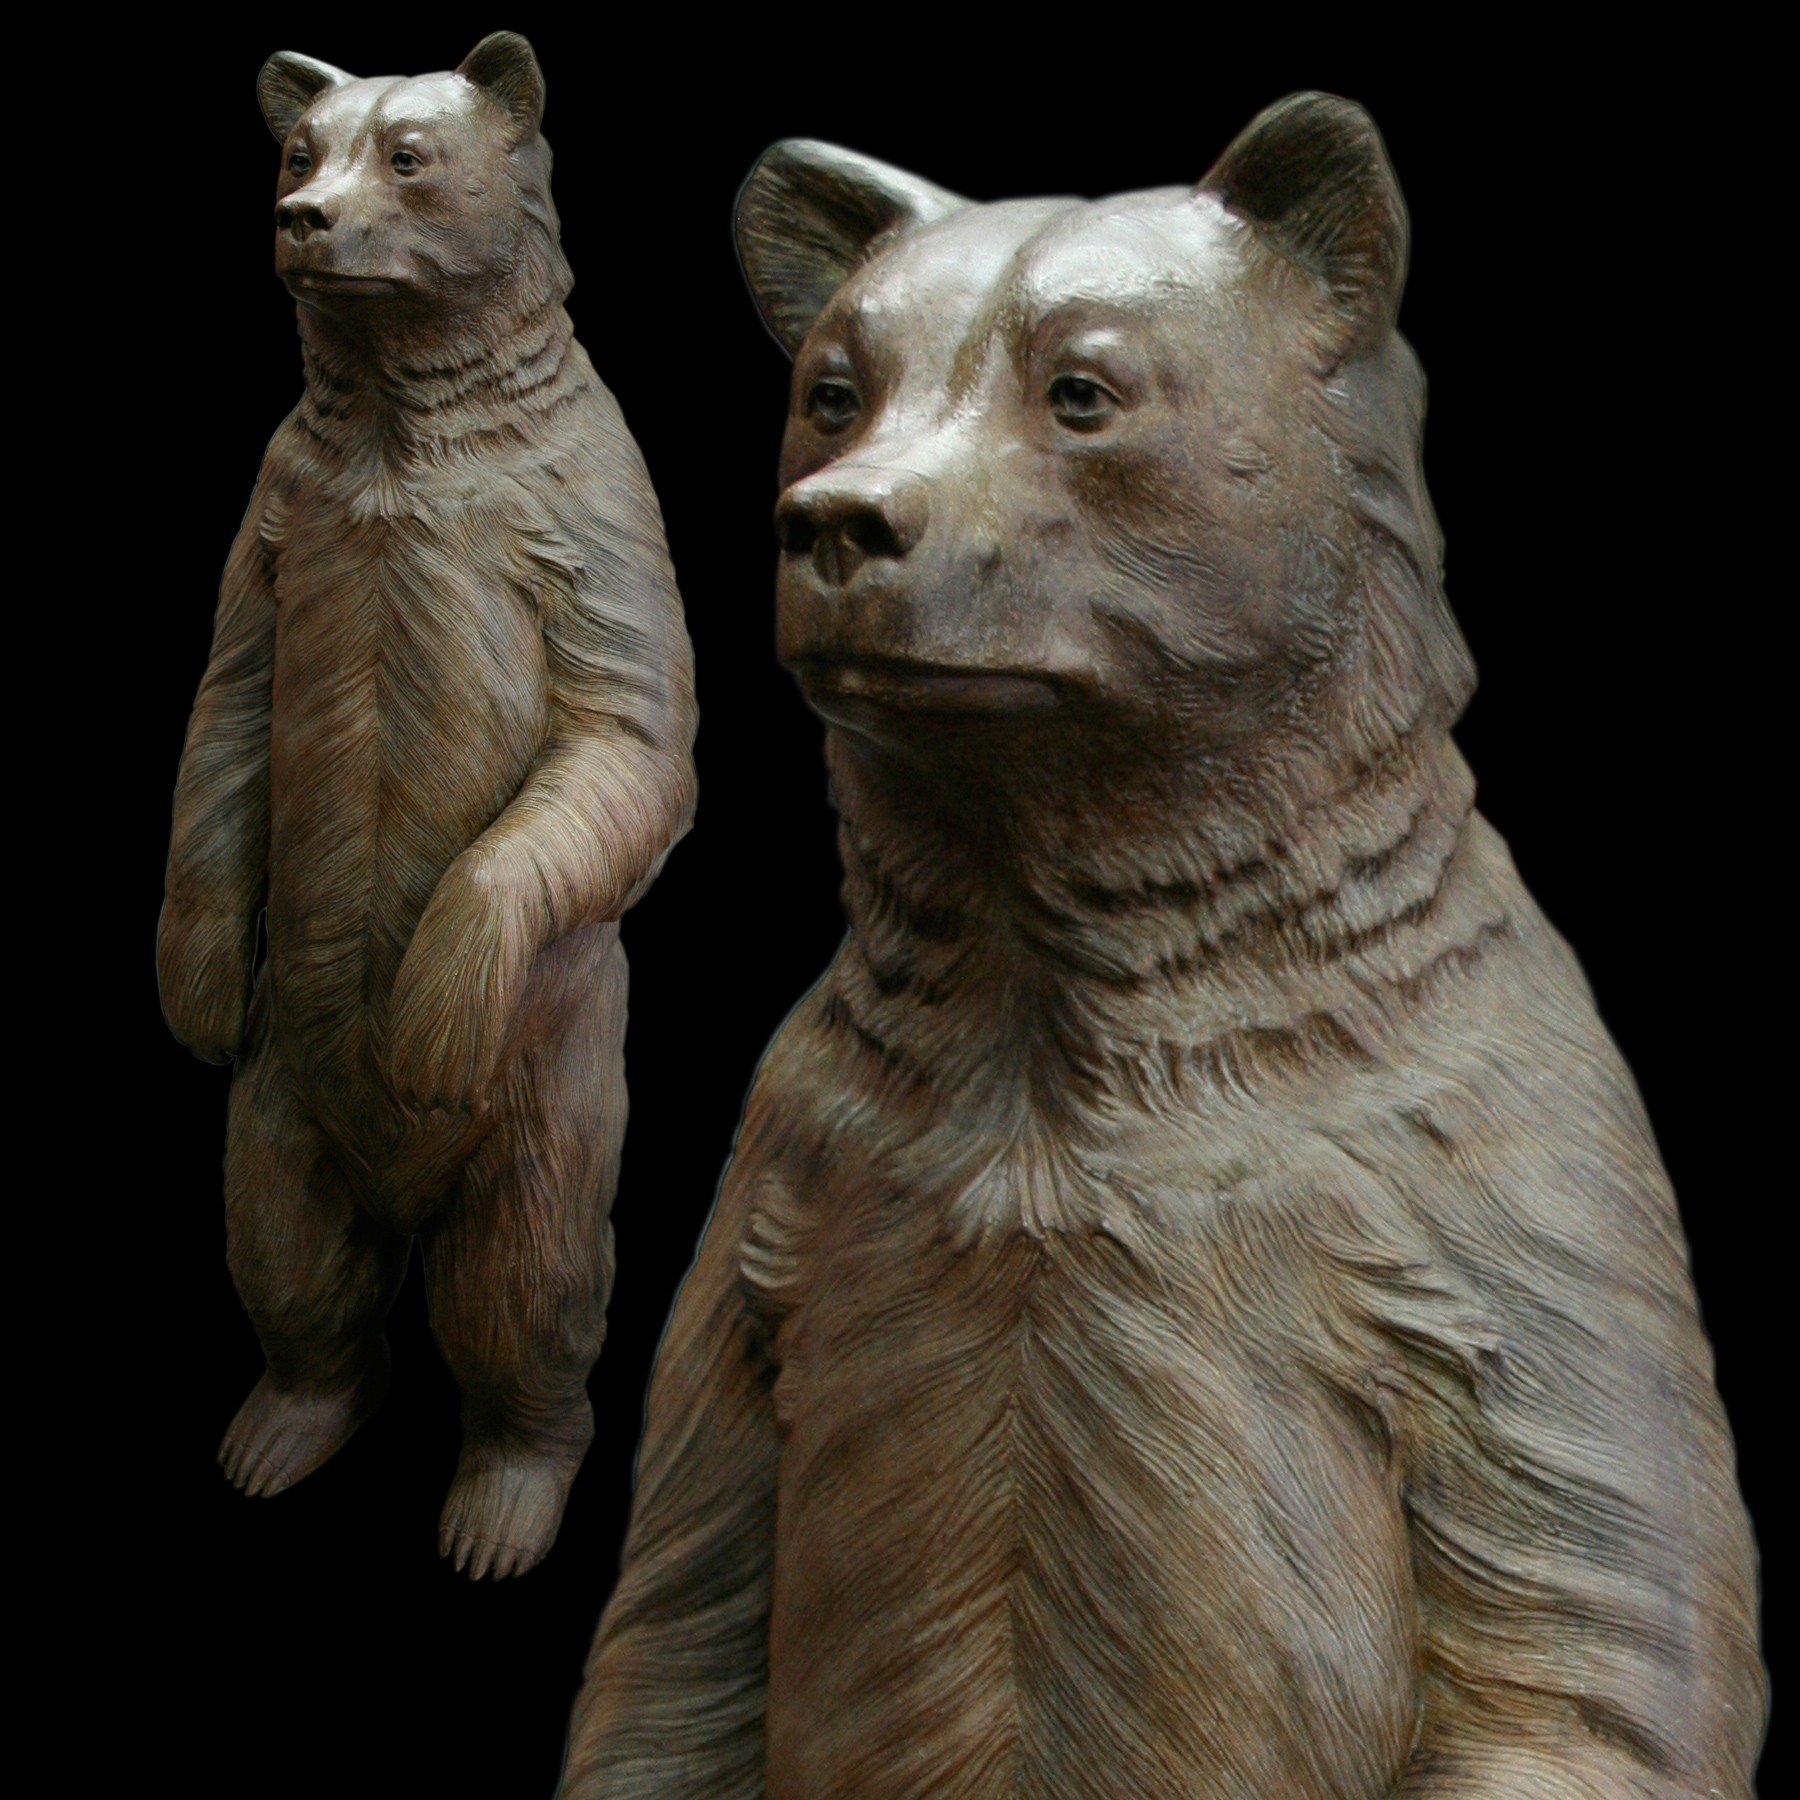 web-sculpt-r_bear-2.jpg